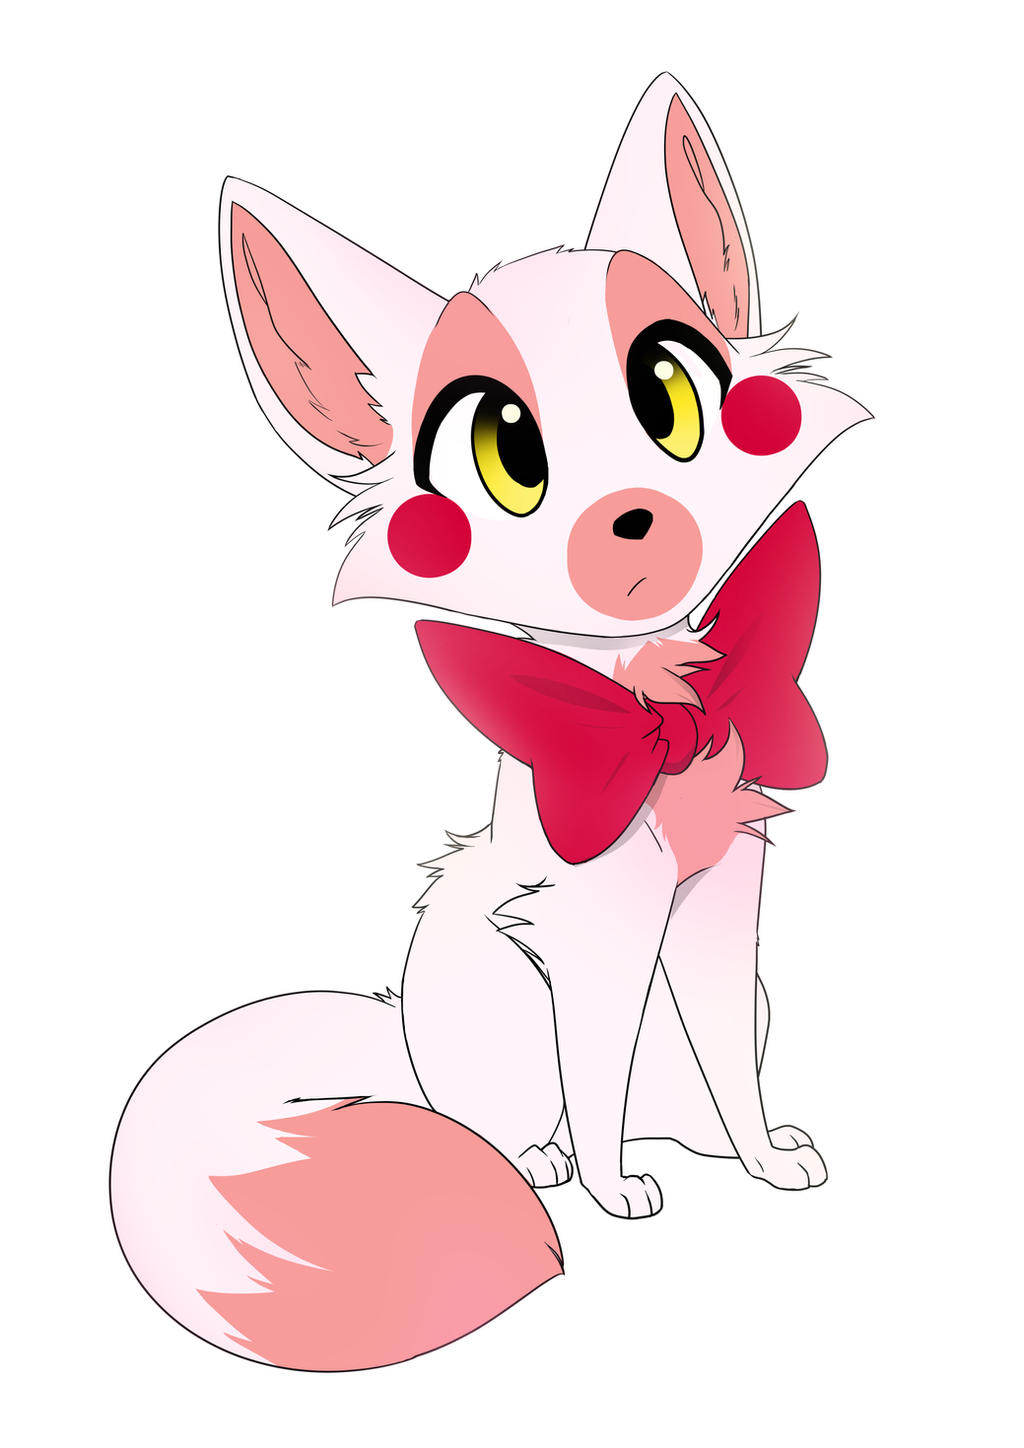 Cute Mangle By CristalWolf567 On DeviantArt